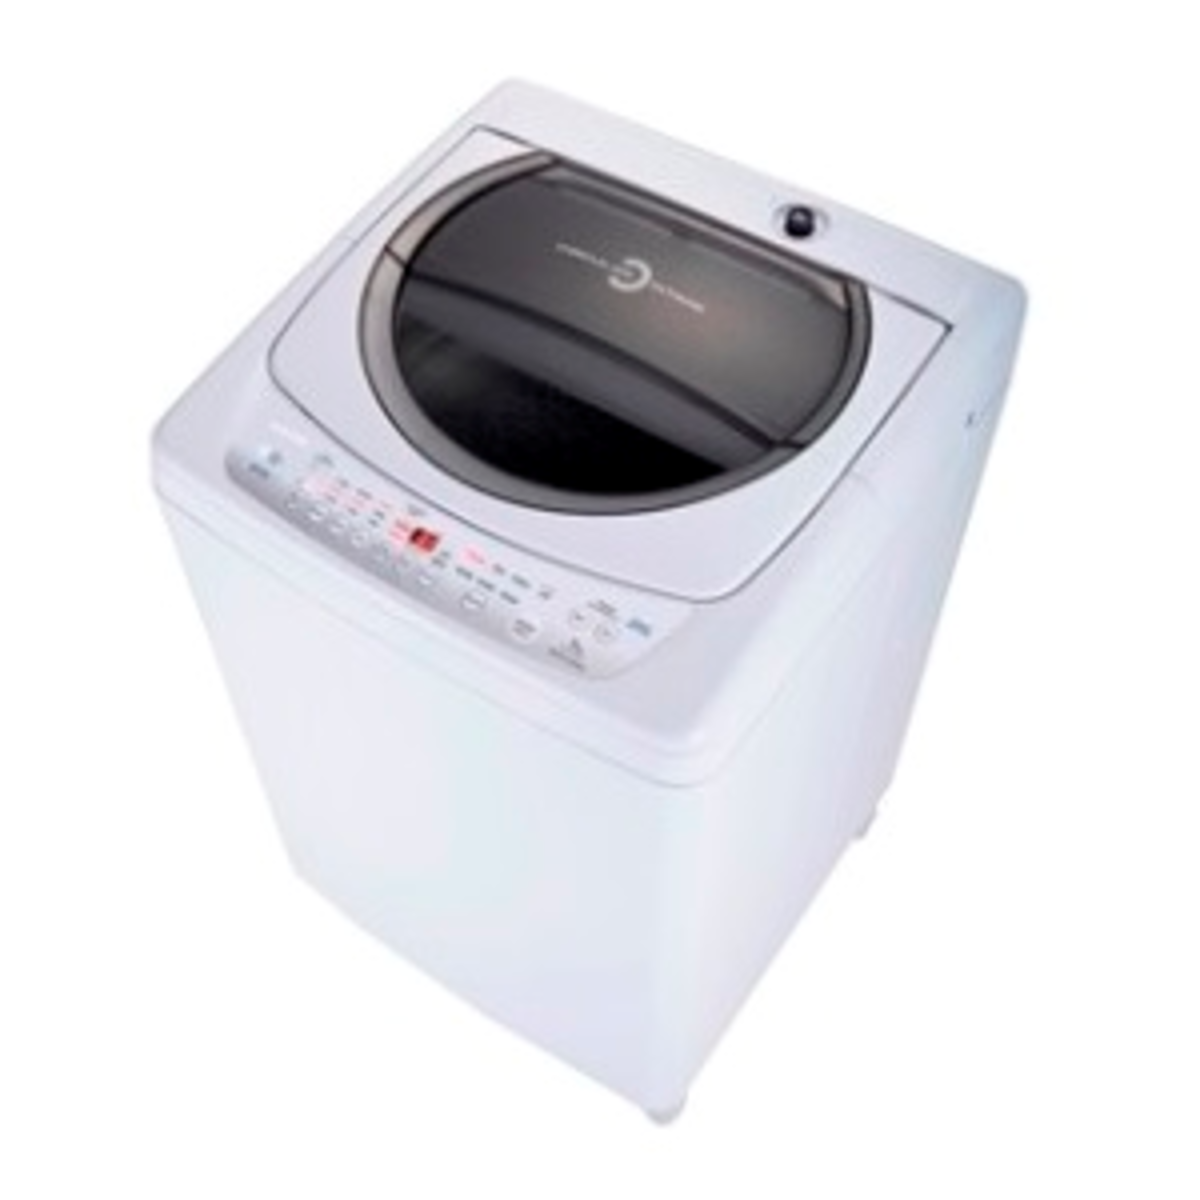 AW-B1000GH Automatic Washer (9.0kg)  Hong Kong Warranty Genuine Products